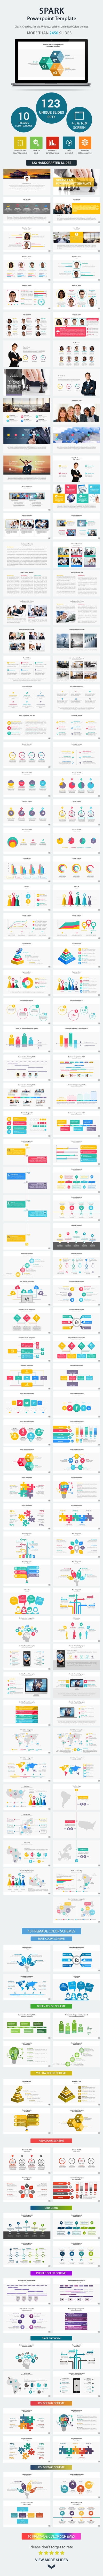 GraphicRiver Spark PowerPoint Presentation Template 10131345